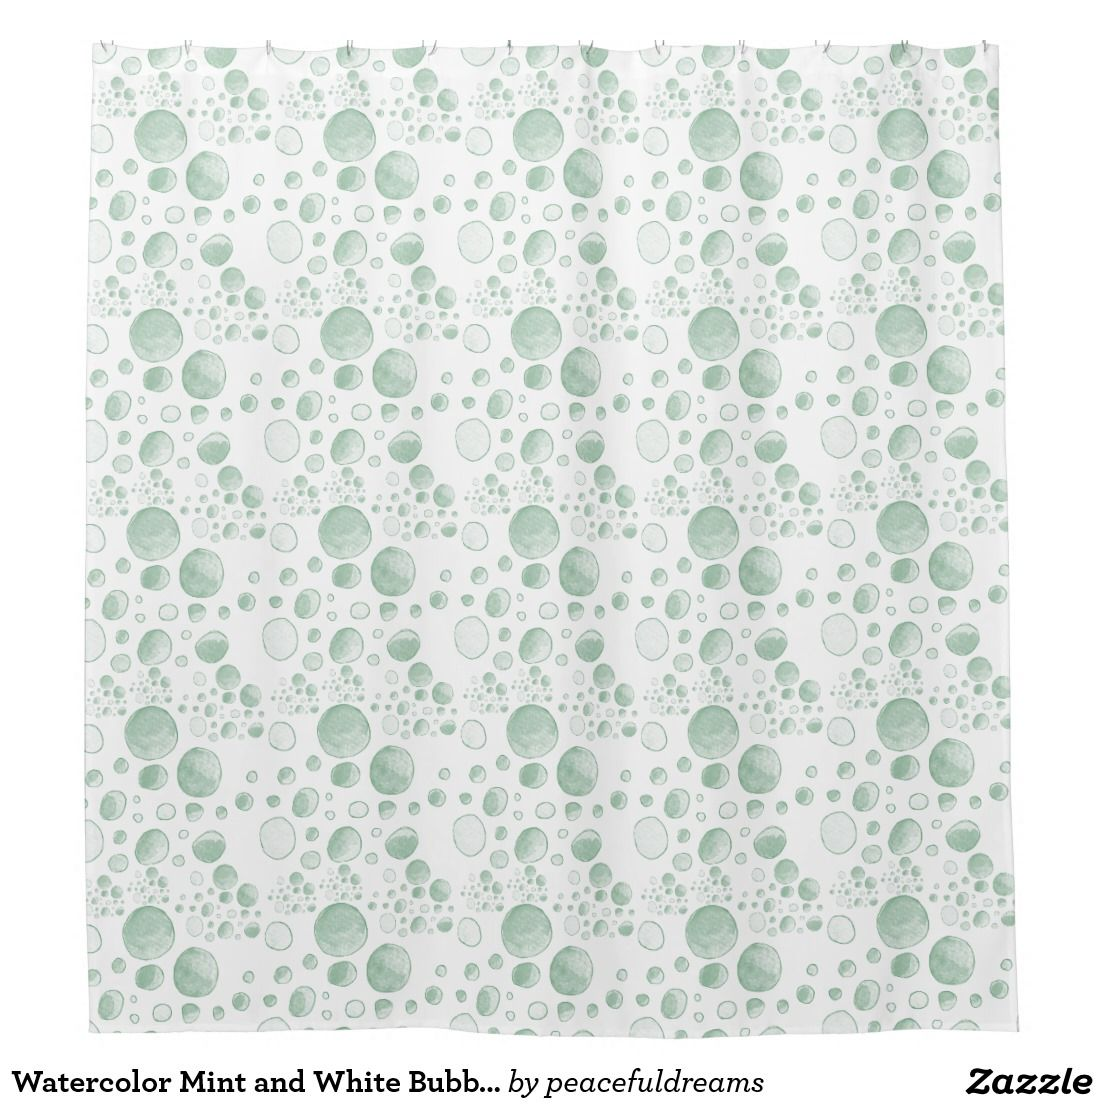 Watercolor Mint And White Bubble Dots Shower Curtain Akvareller - Mint green shower curtain